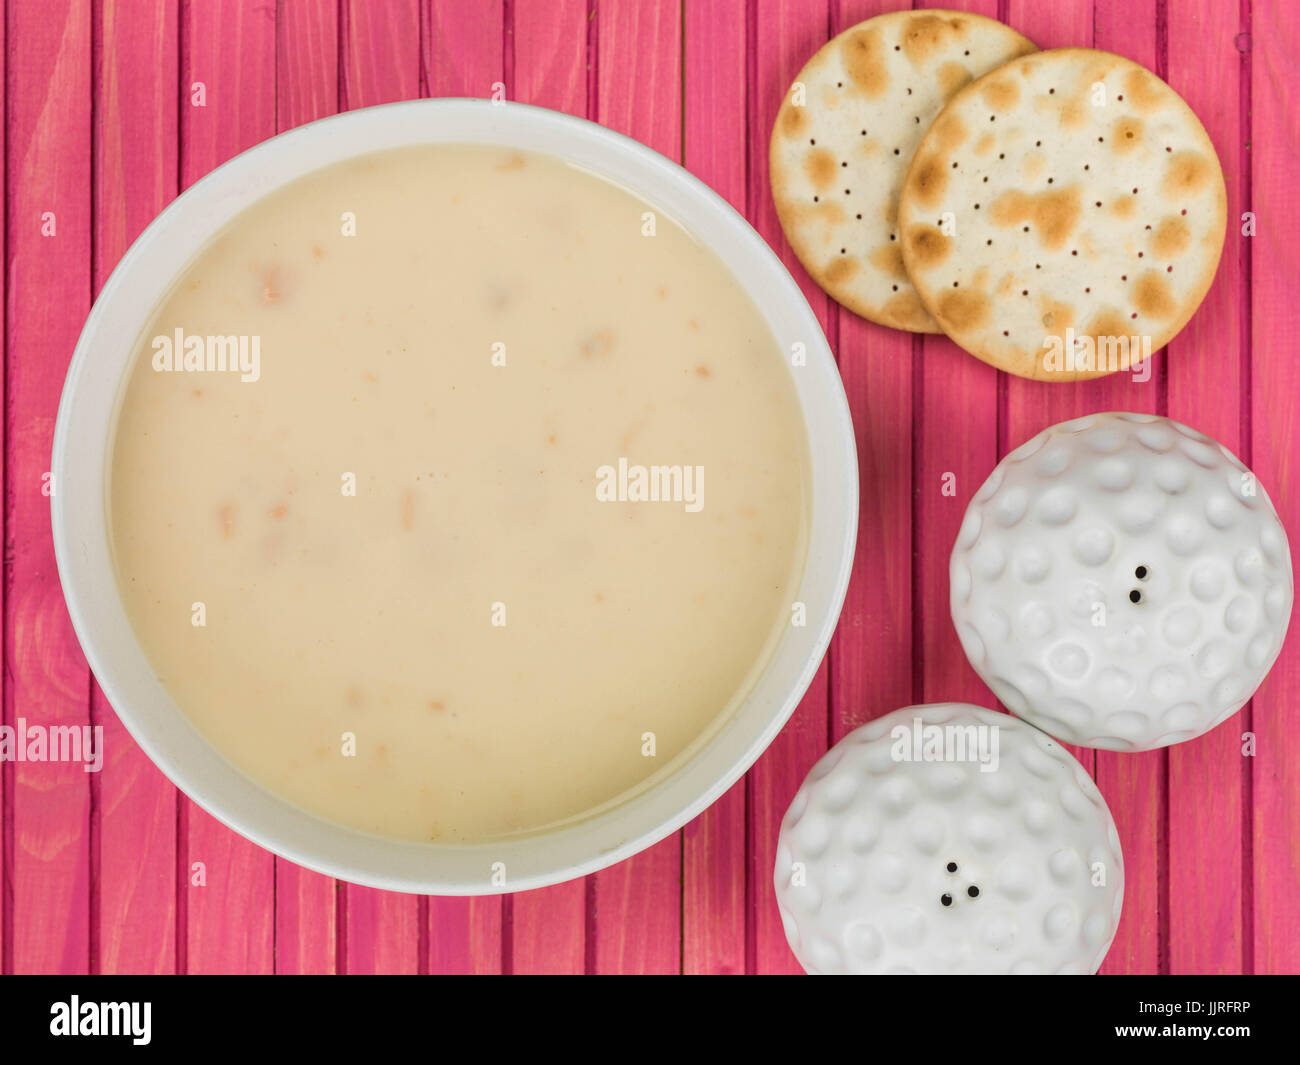 Bowl of Cream of Chicken Soup Against a Pink Wooden Background - Stock Image